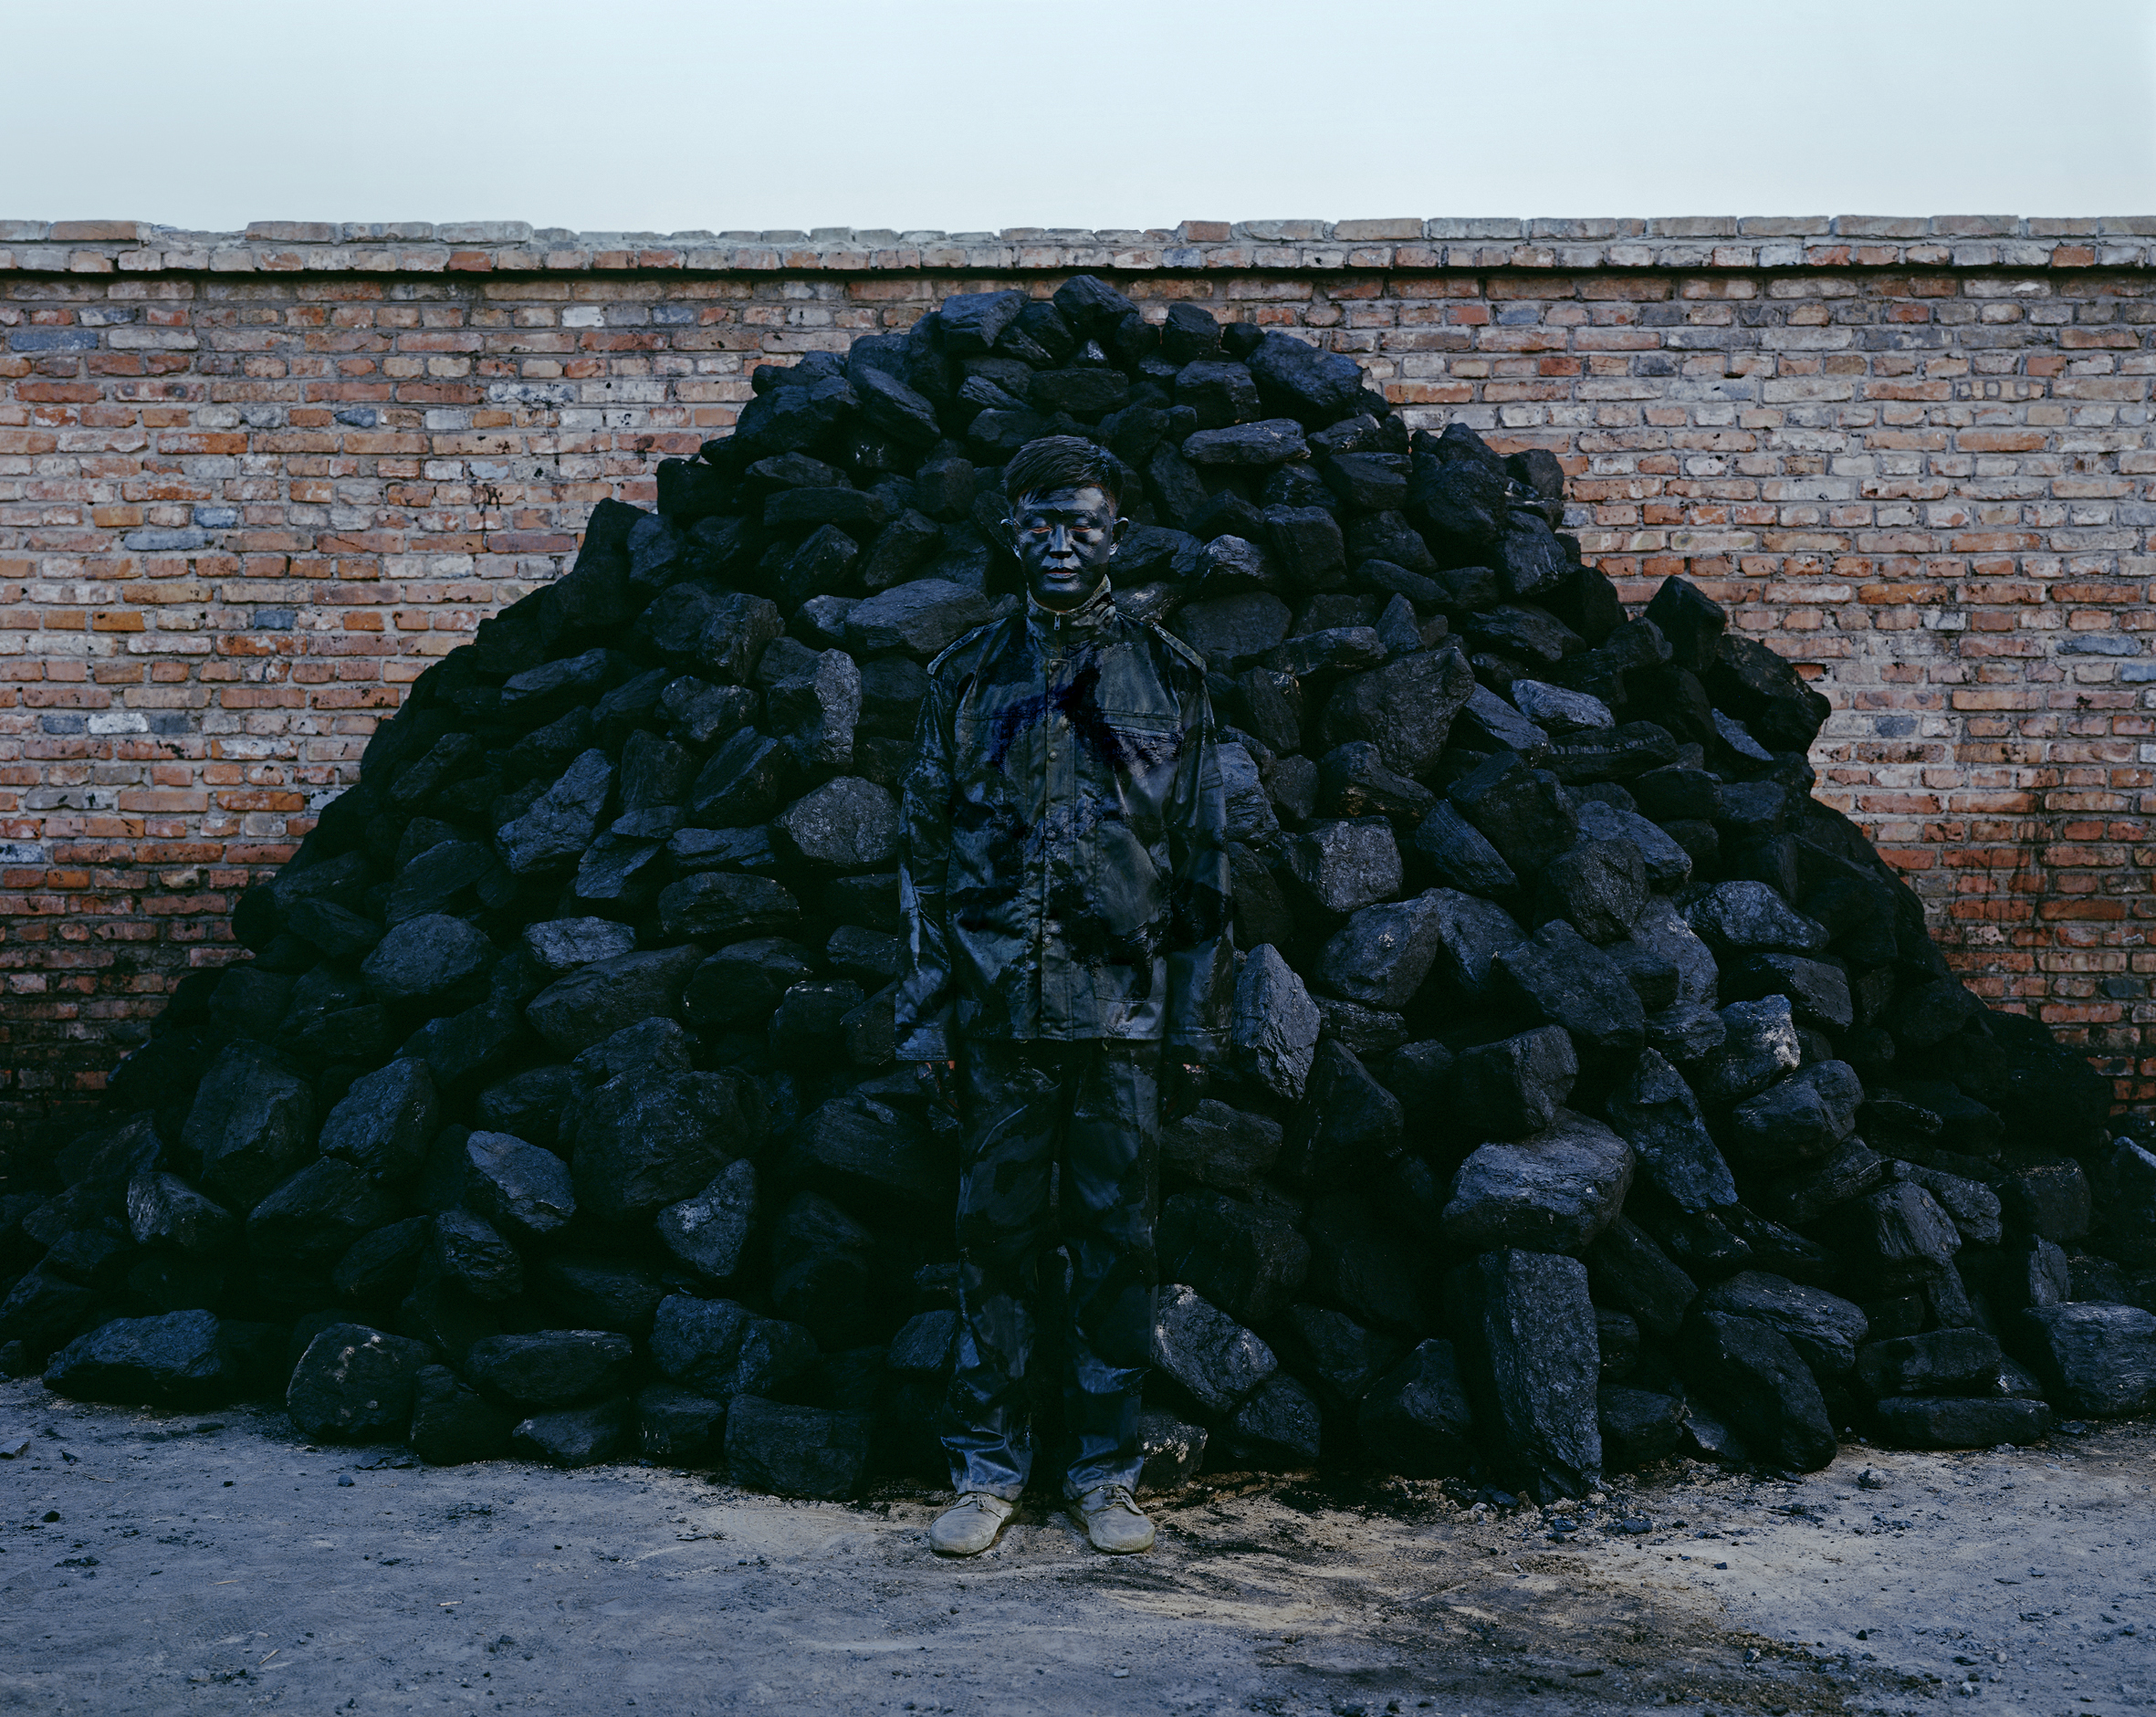 Liu Bolin's Hiding in the City